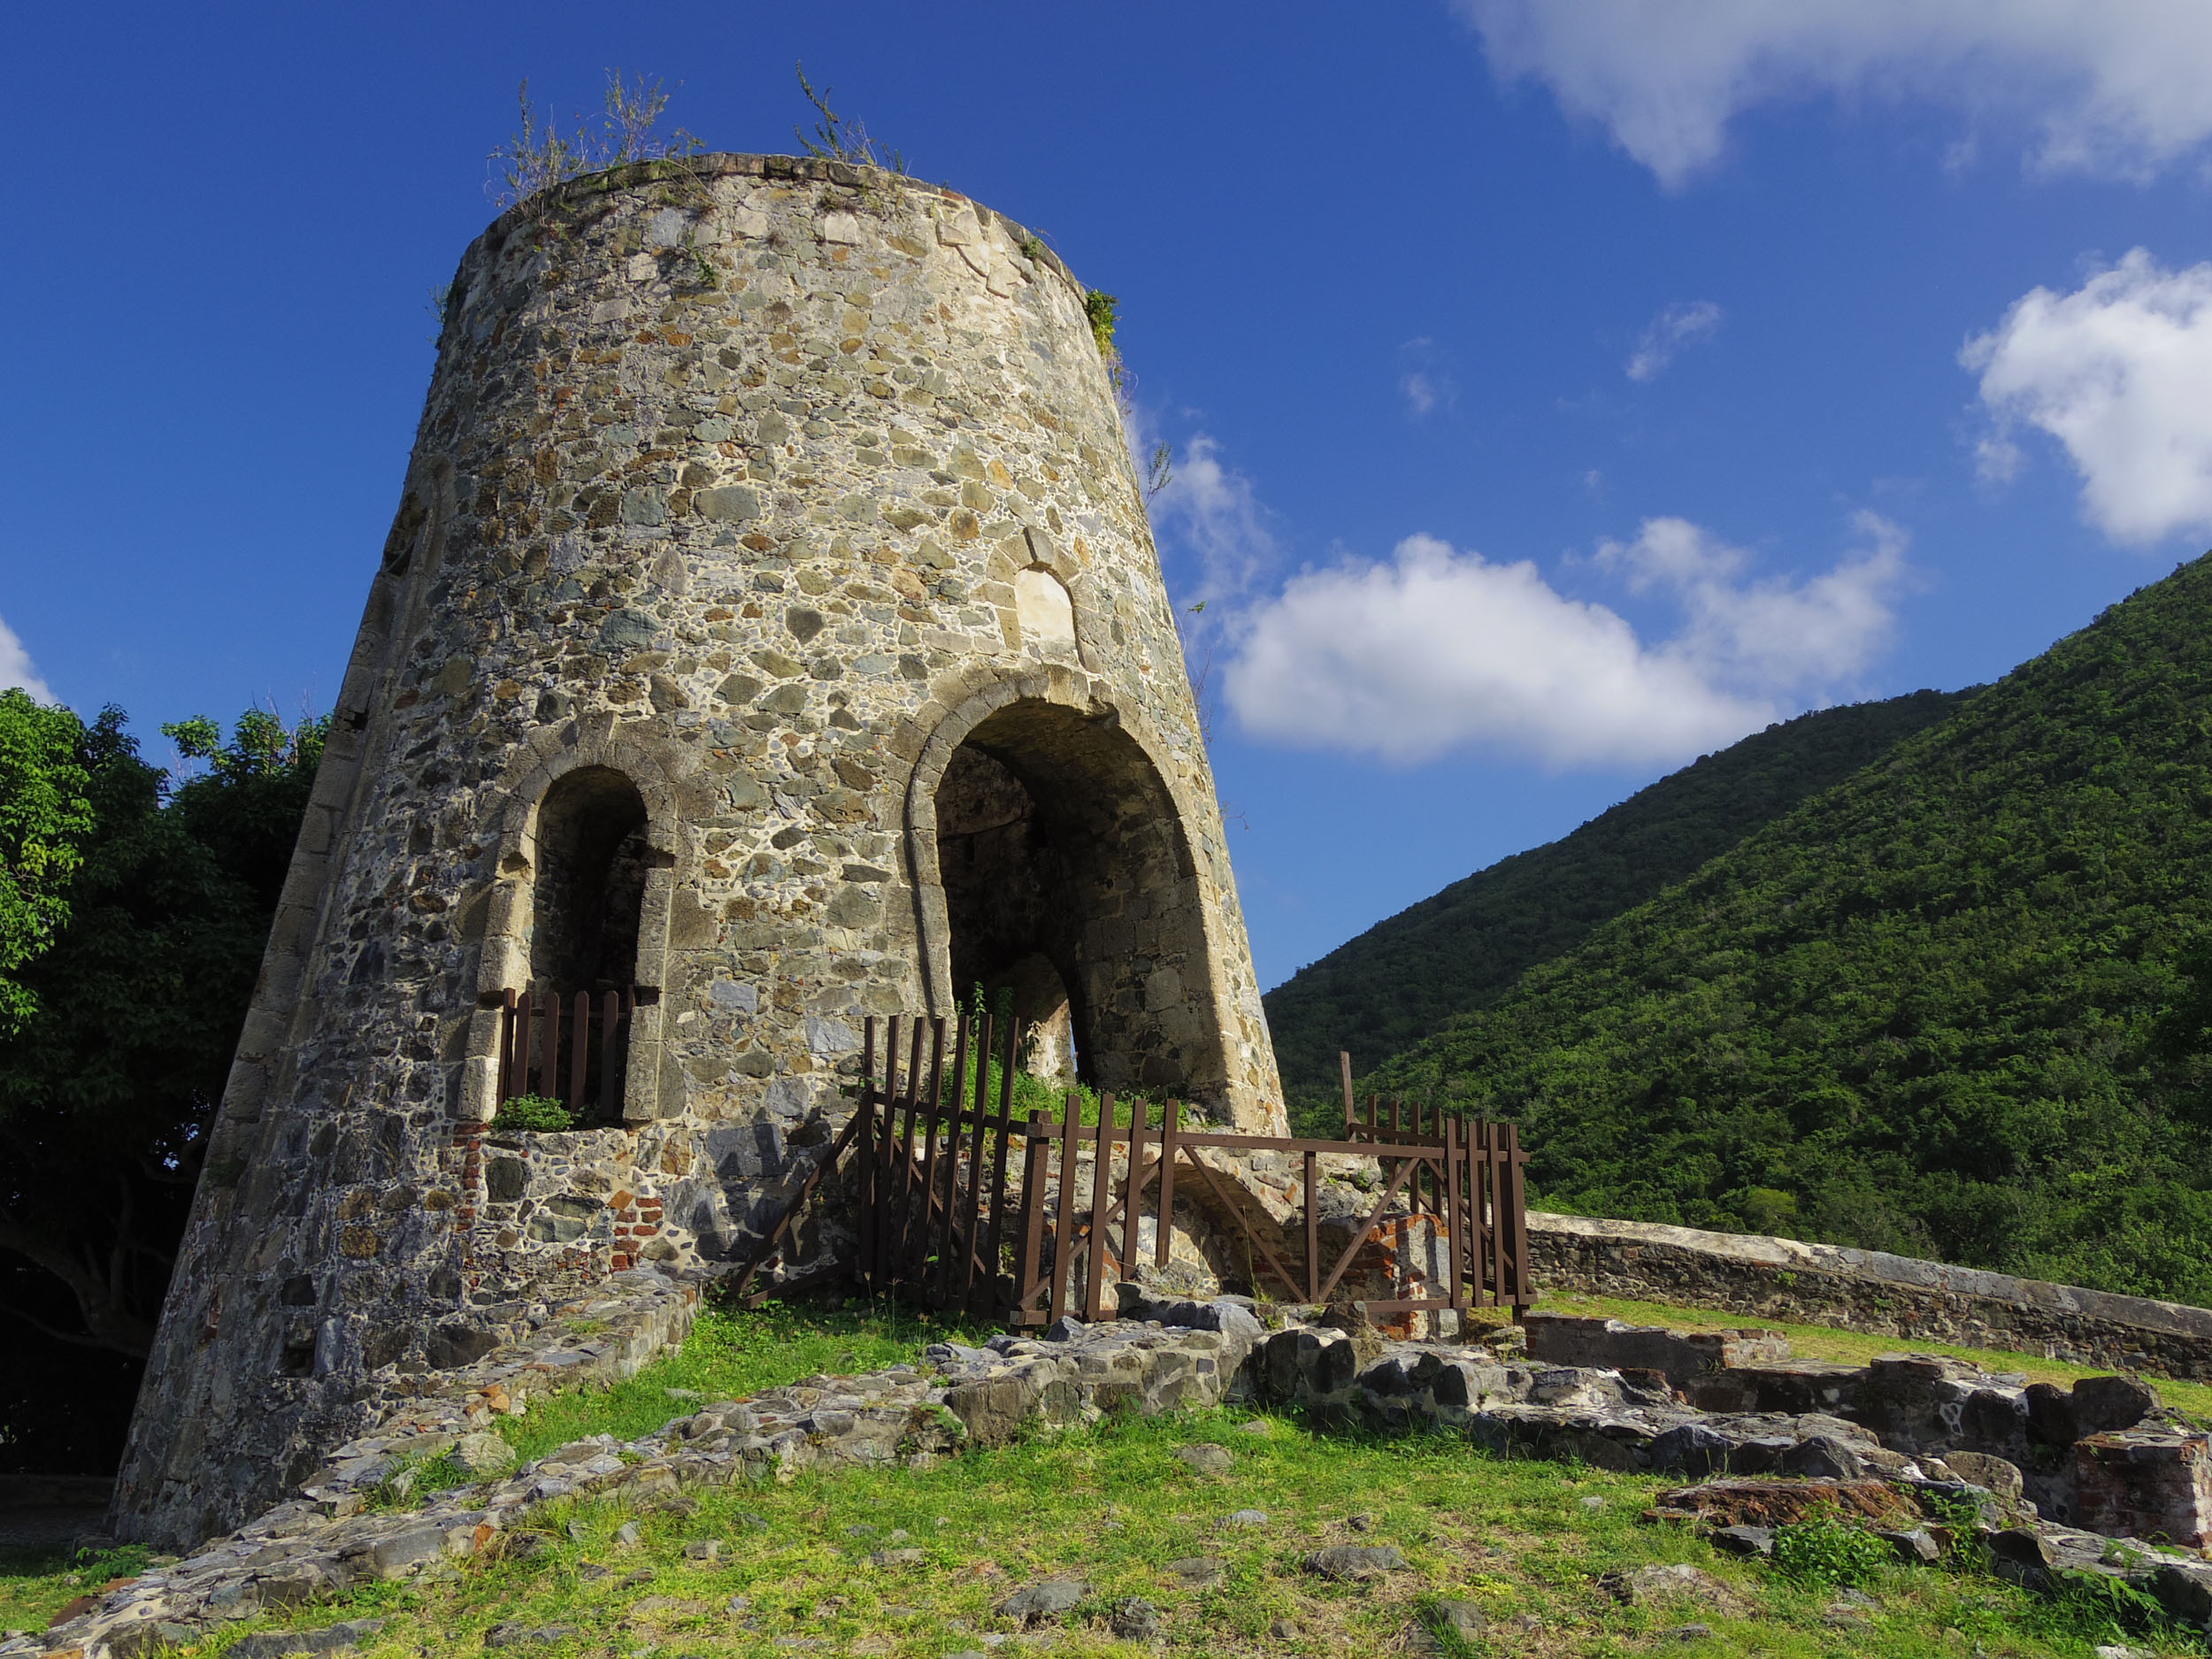 Dutch By Design: The Slave Plantation Ruins of St. John Island